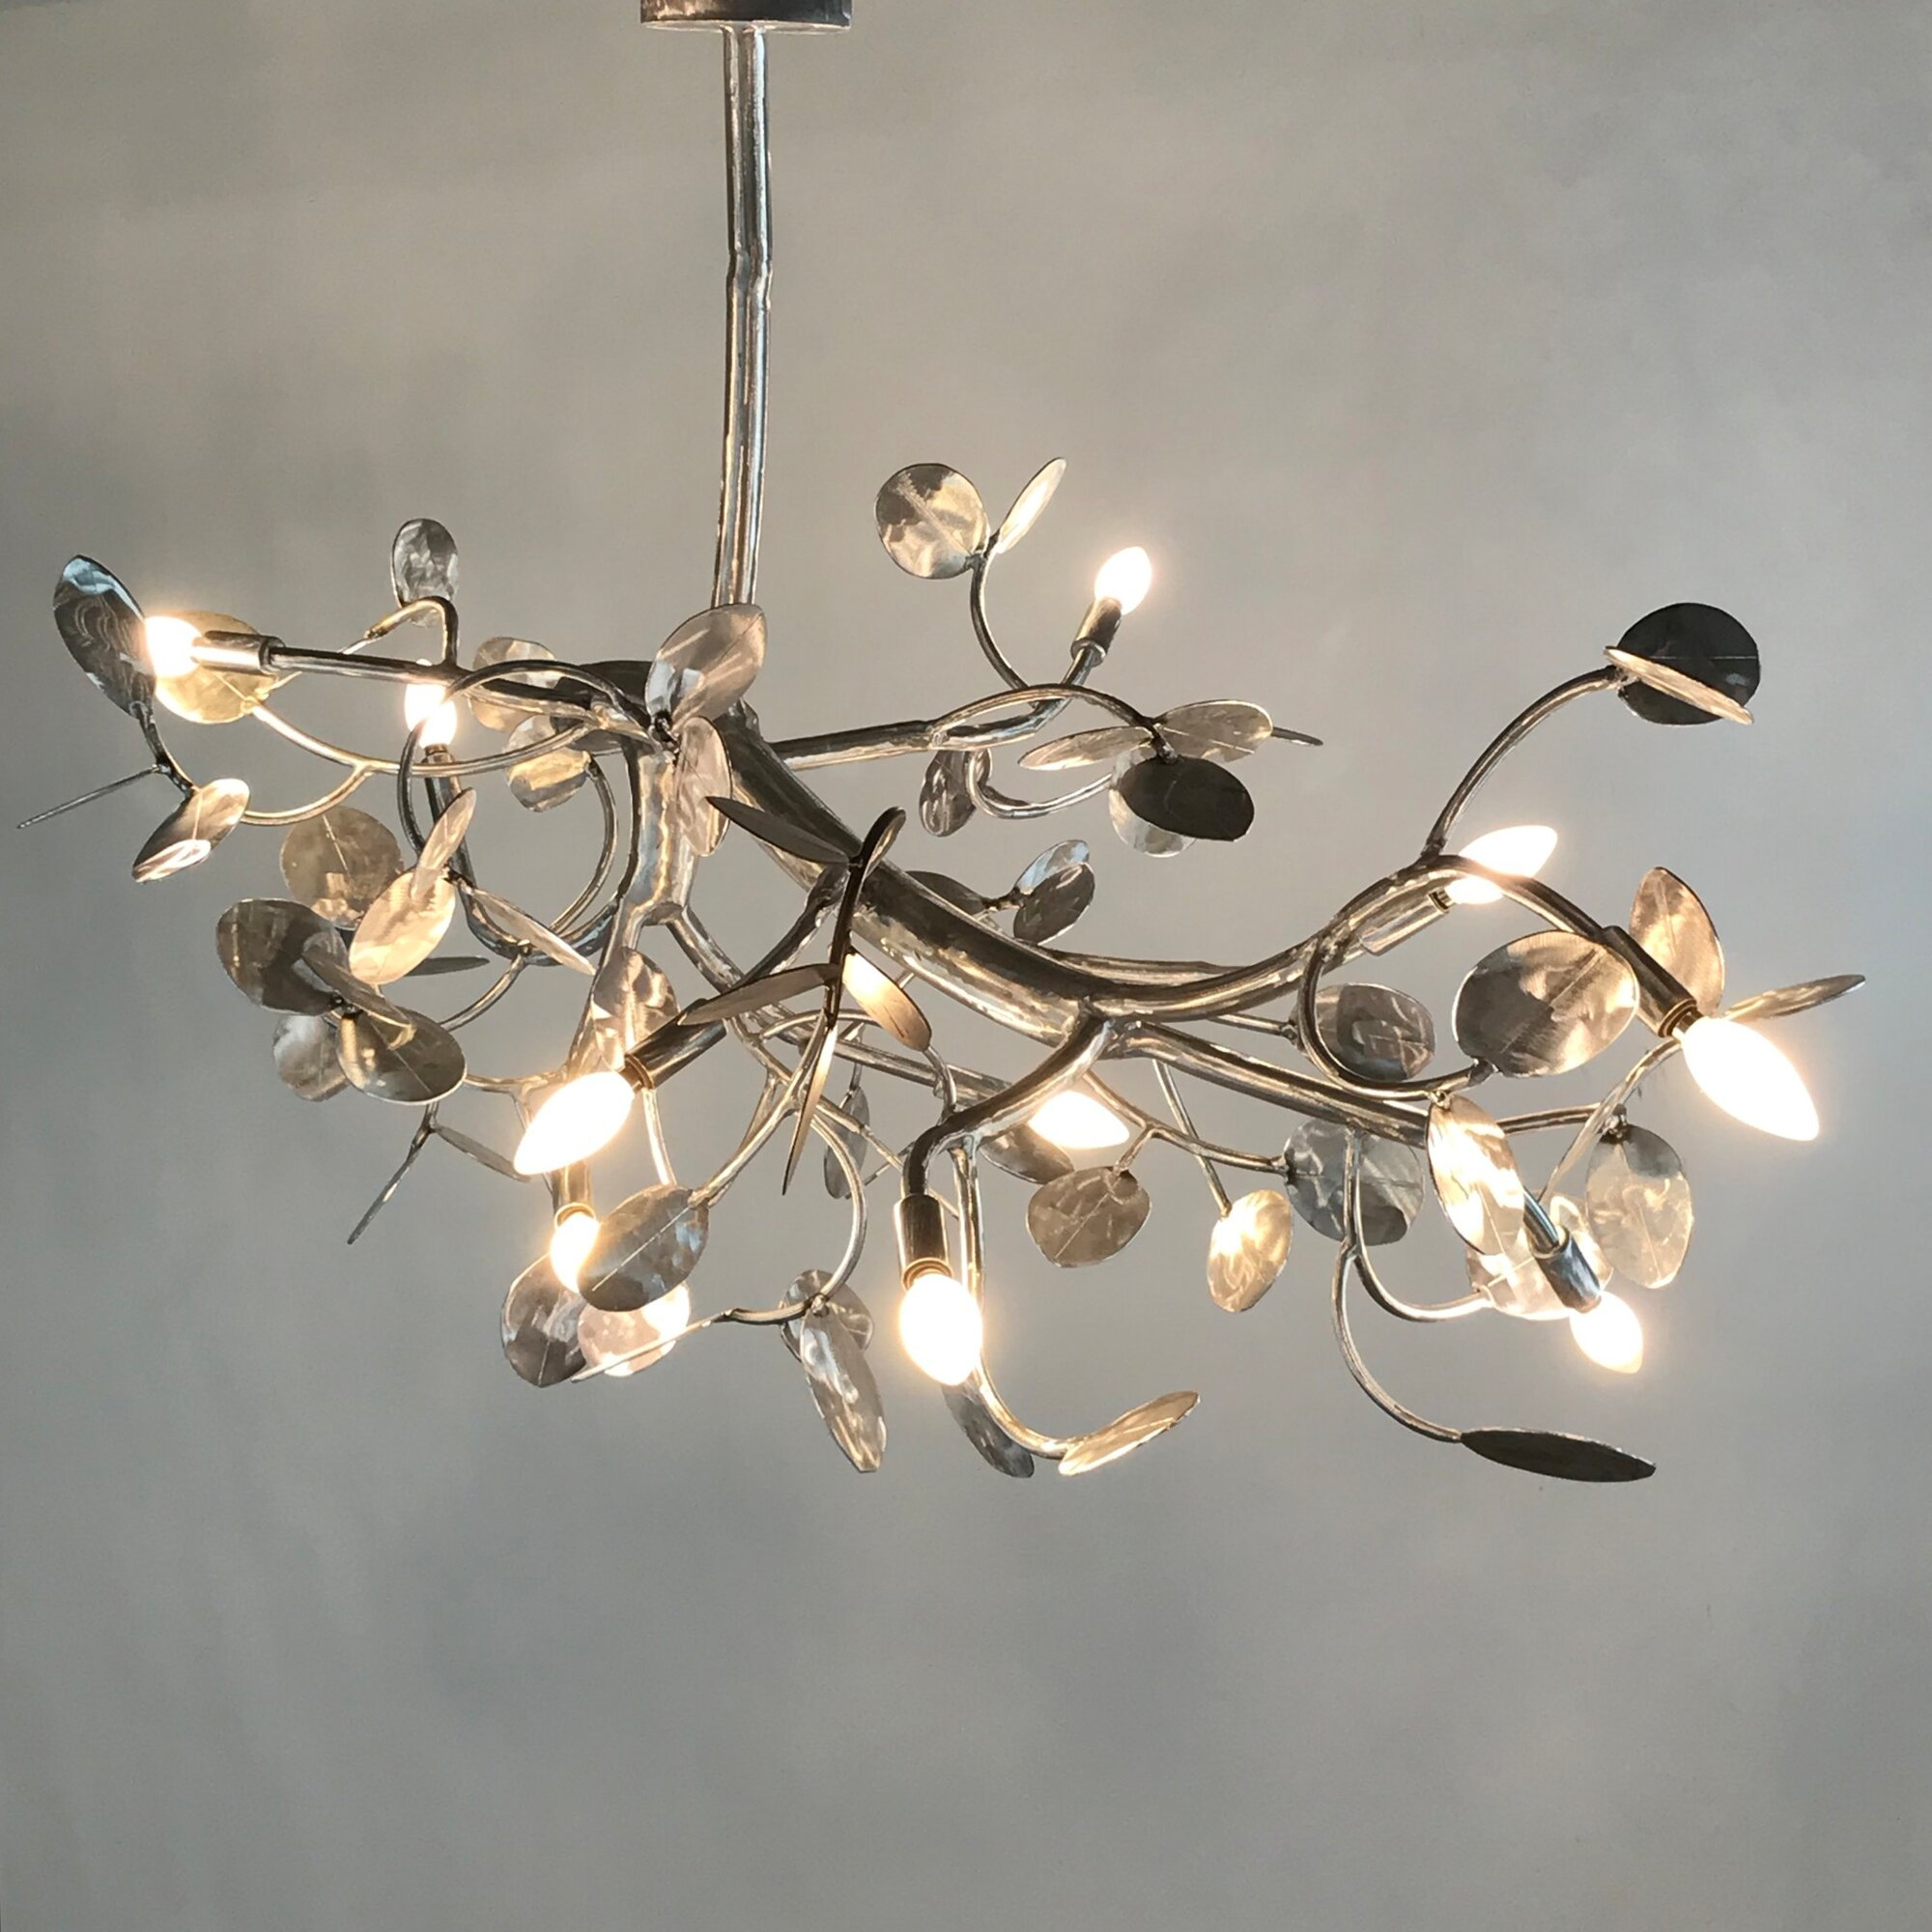 Mangrove NewGROWTH chandelier